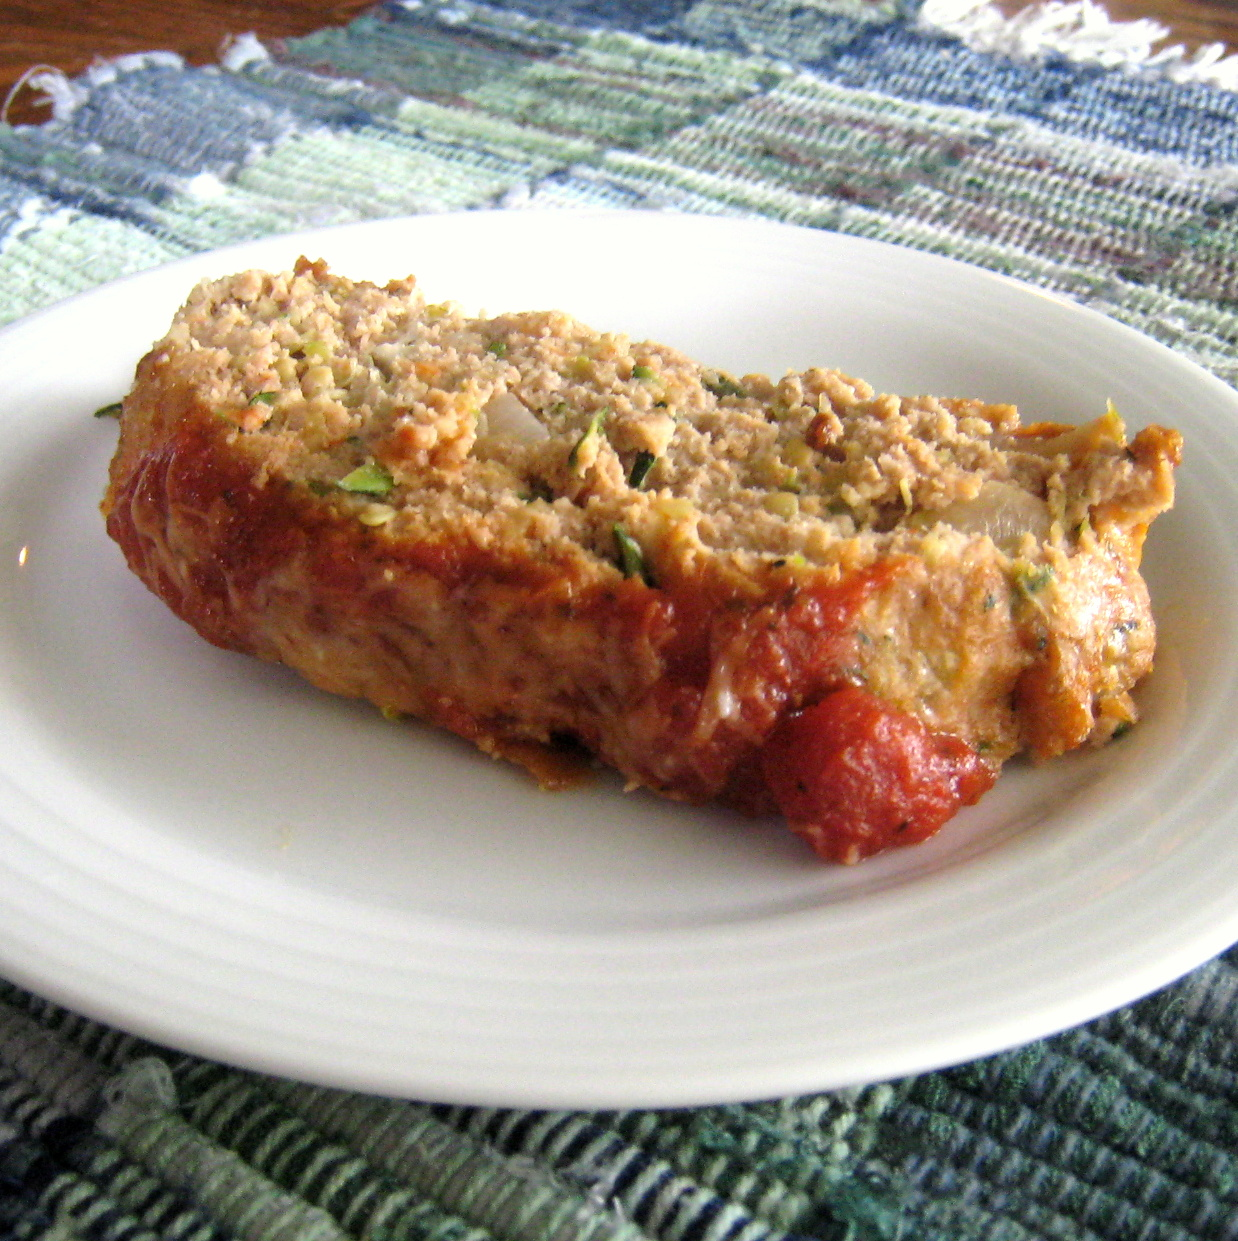 Common Sense Cooking: Zucchini, Part II- Italian Turkey Meatloaf